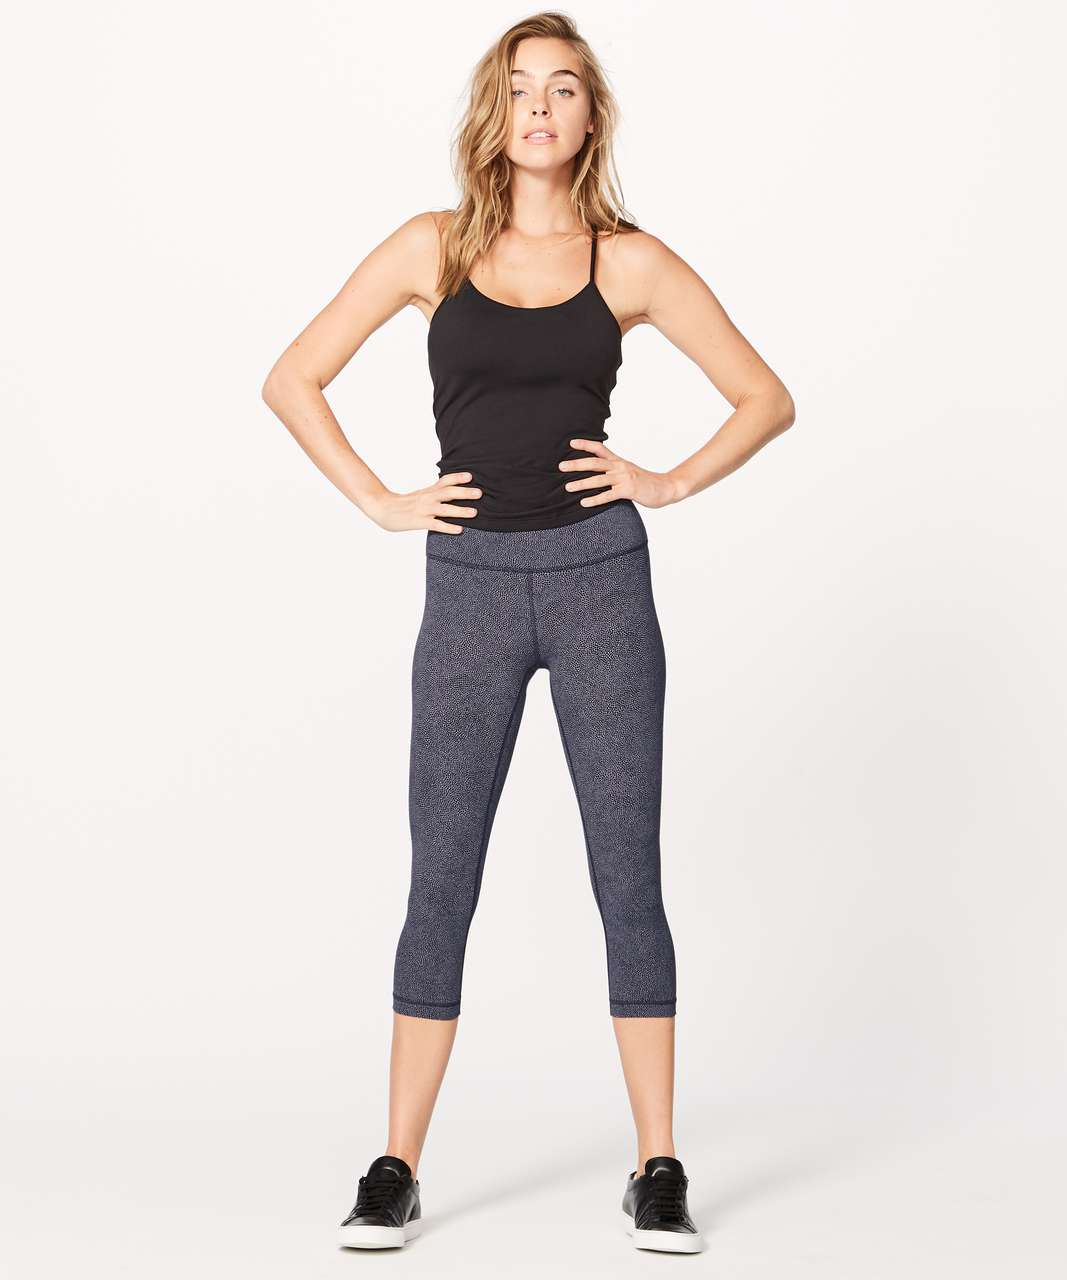 "Lululemon Wunder Under Crop (Hi-Rise) (Full-On Luxtreme 21"") - Disperse Dusky Lavender Black"